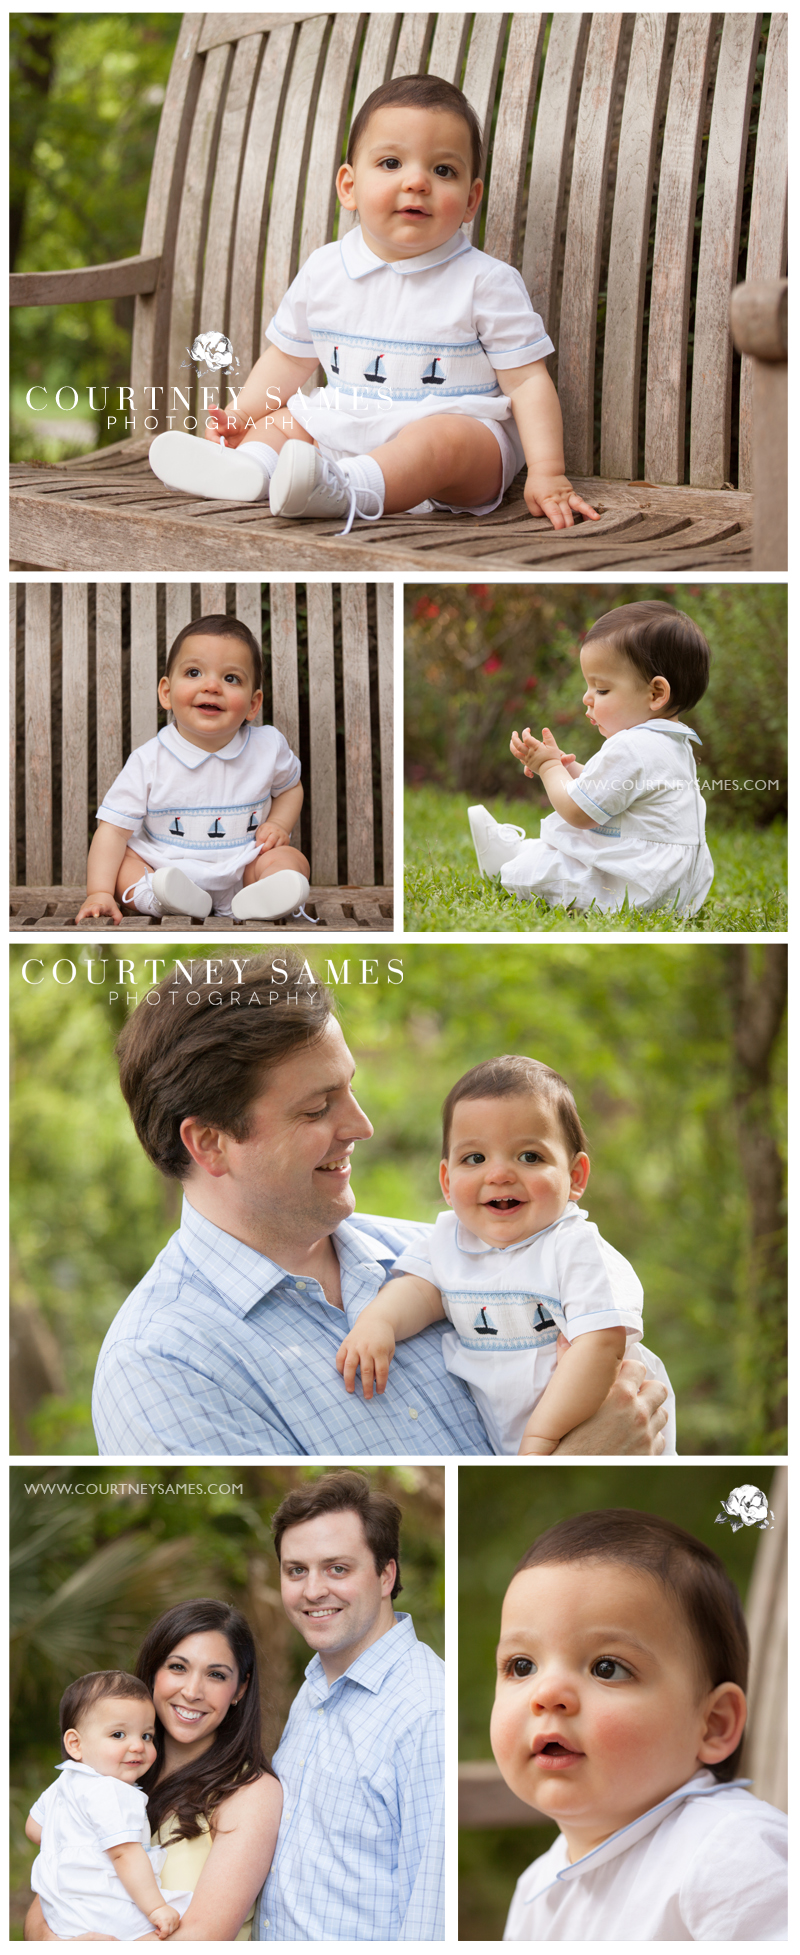 Family & Children's Portrait Photographer – Austin, TX